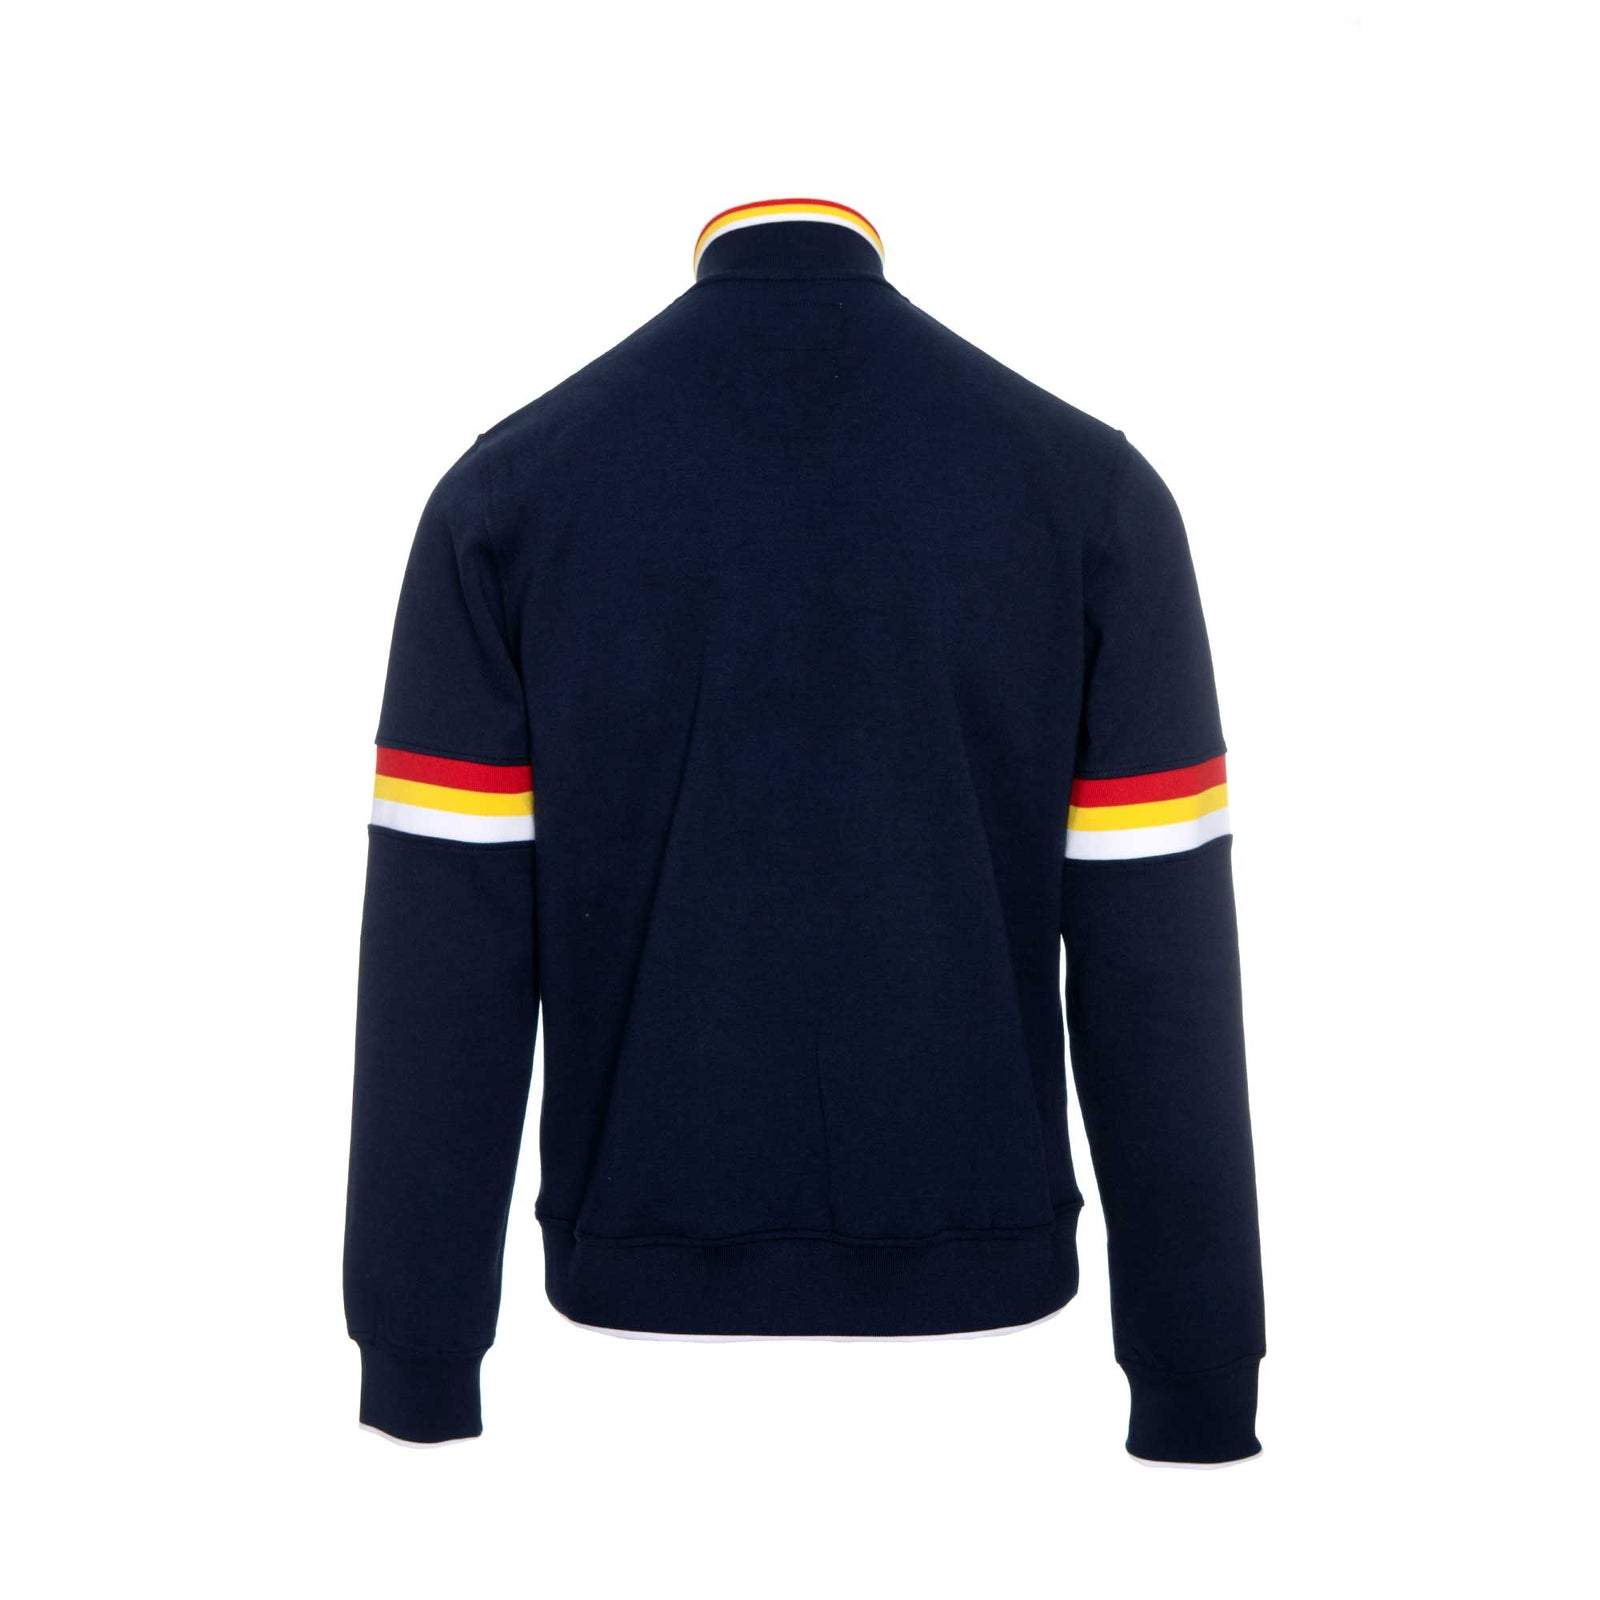 Billionaire Boys Club & Ice Cream Time LS Knit. Half zip sweater in navy.  Style #881-8306